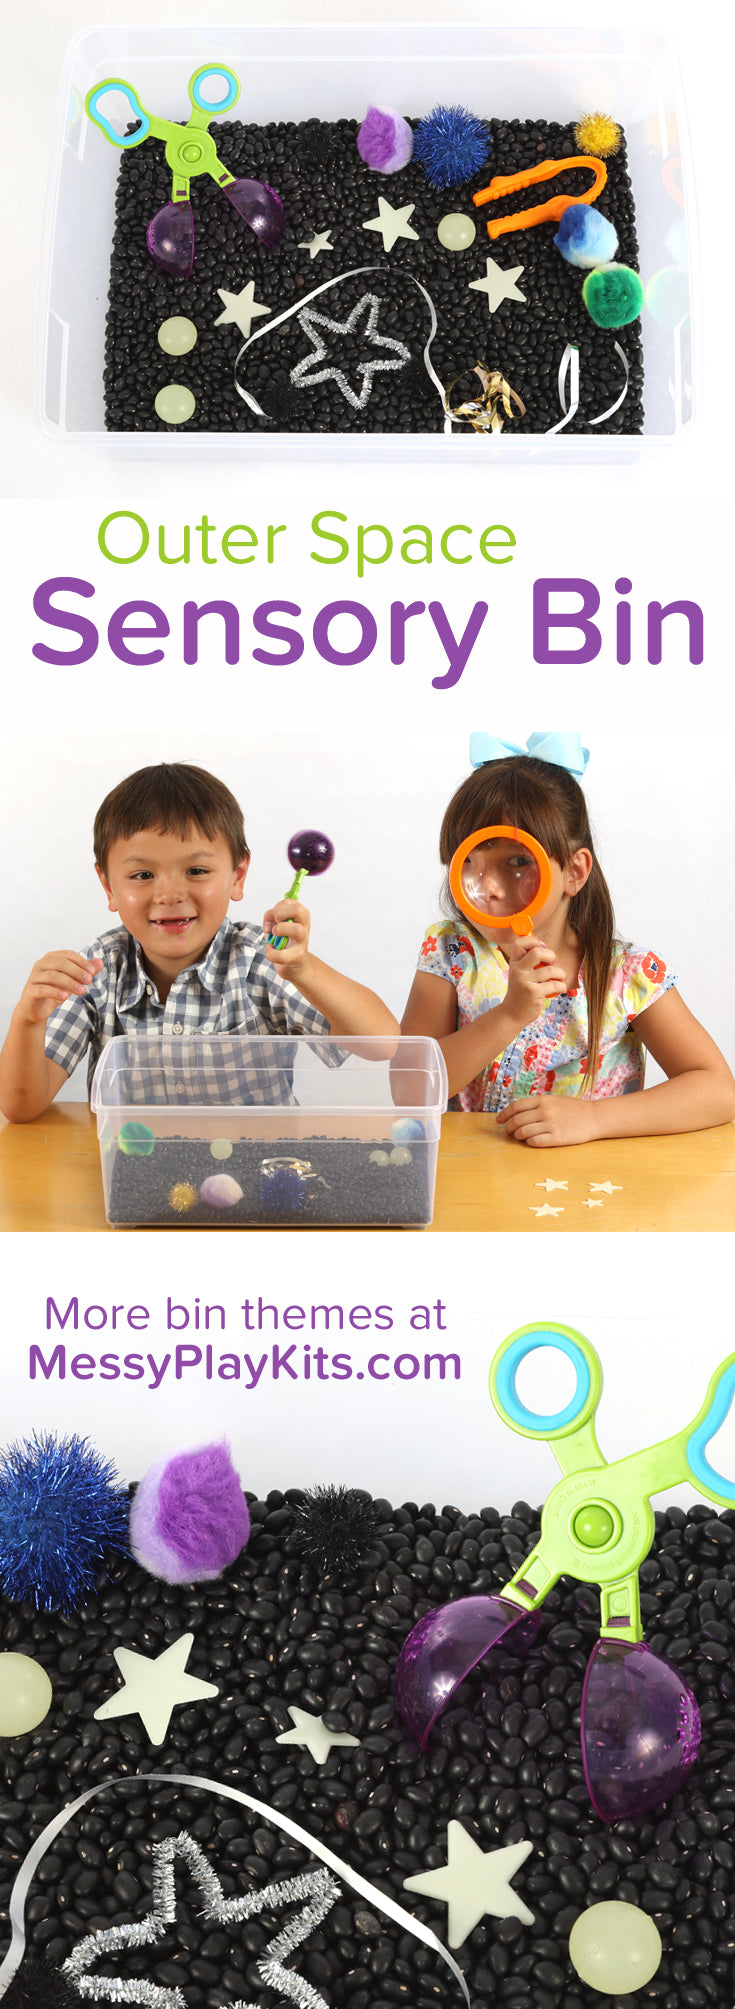 Outer Space Sensory Bin from Messy Play Kits